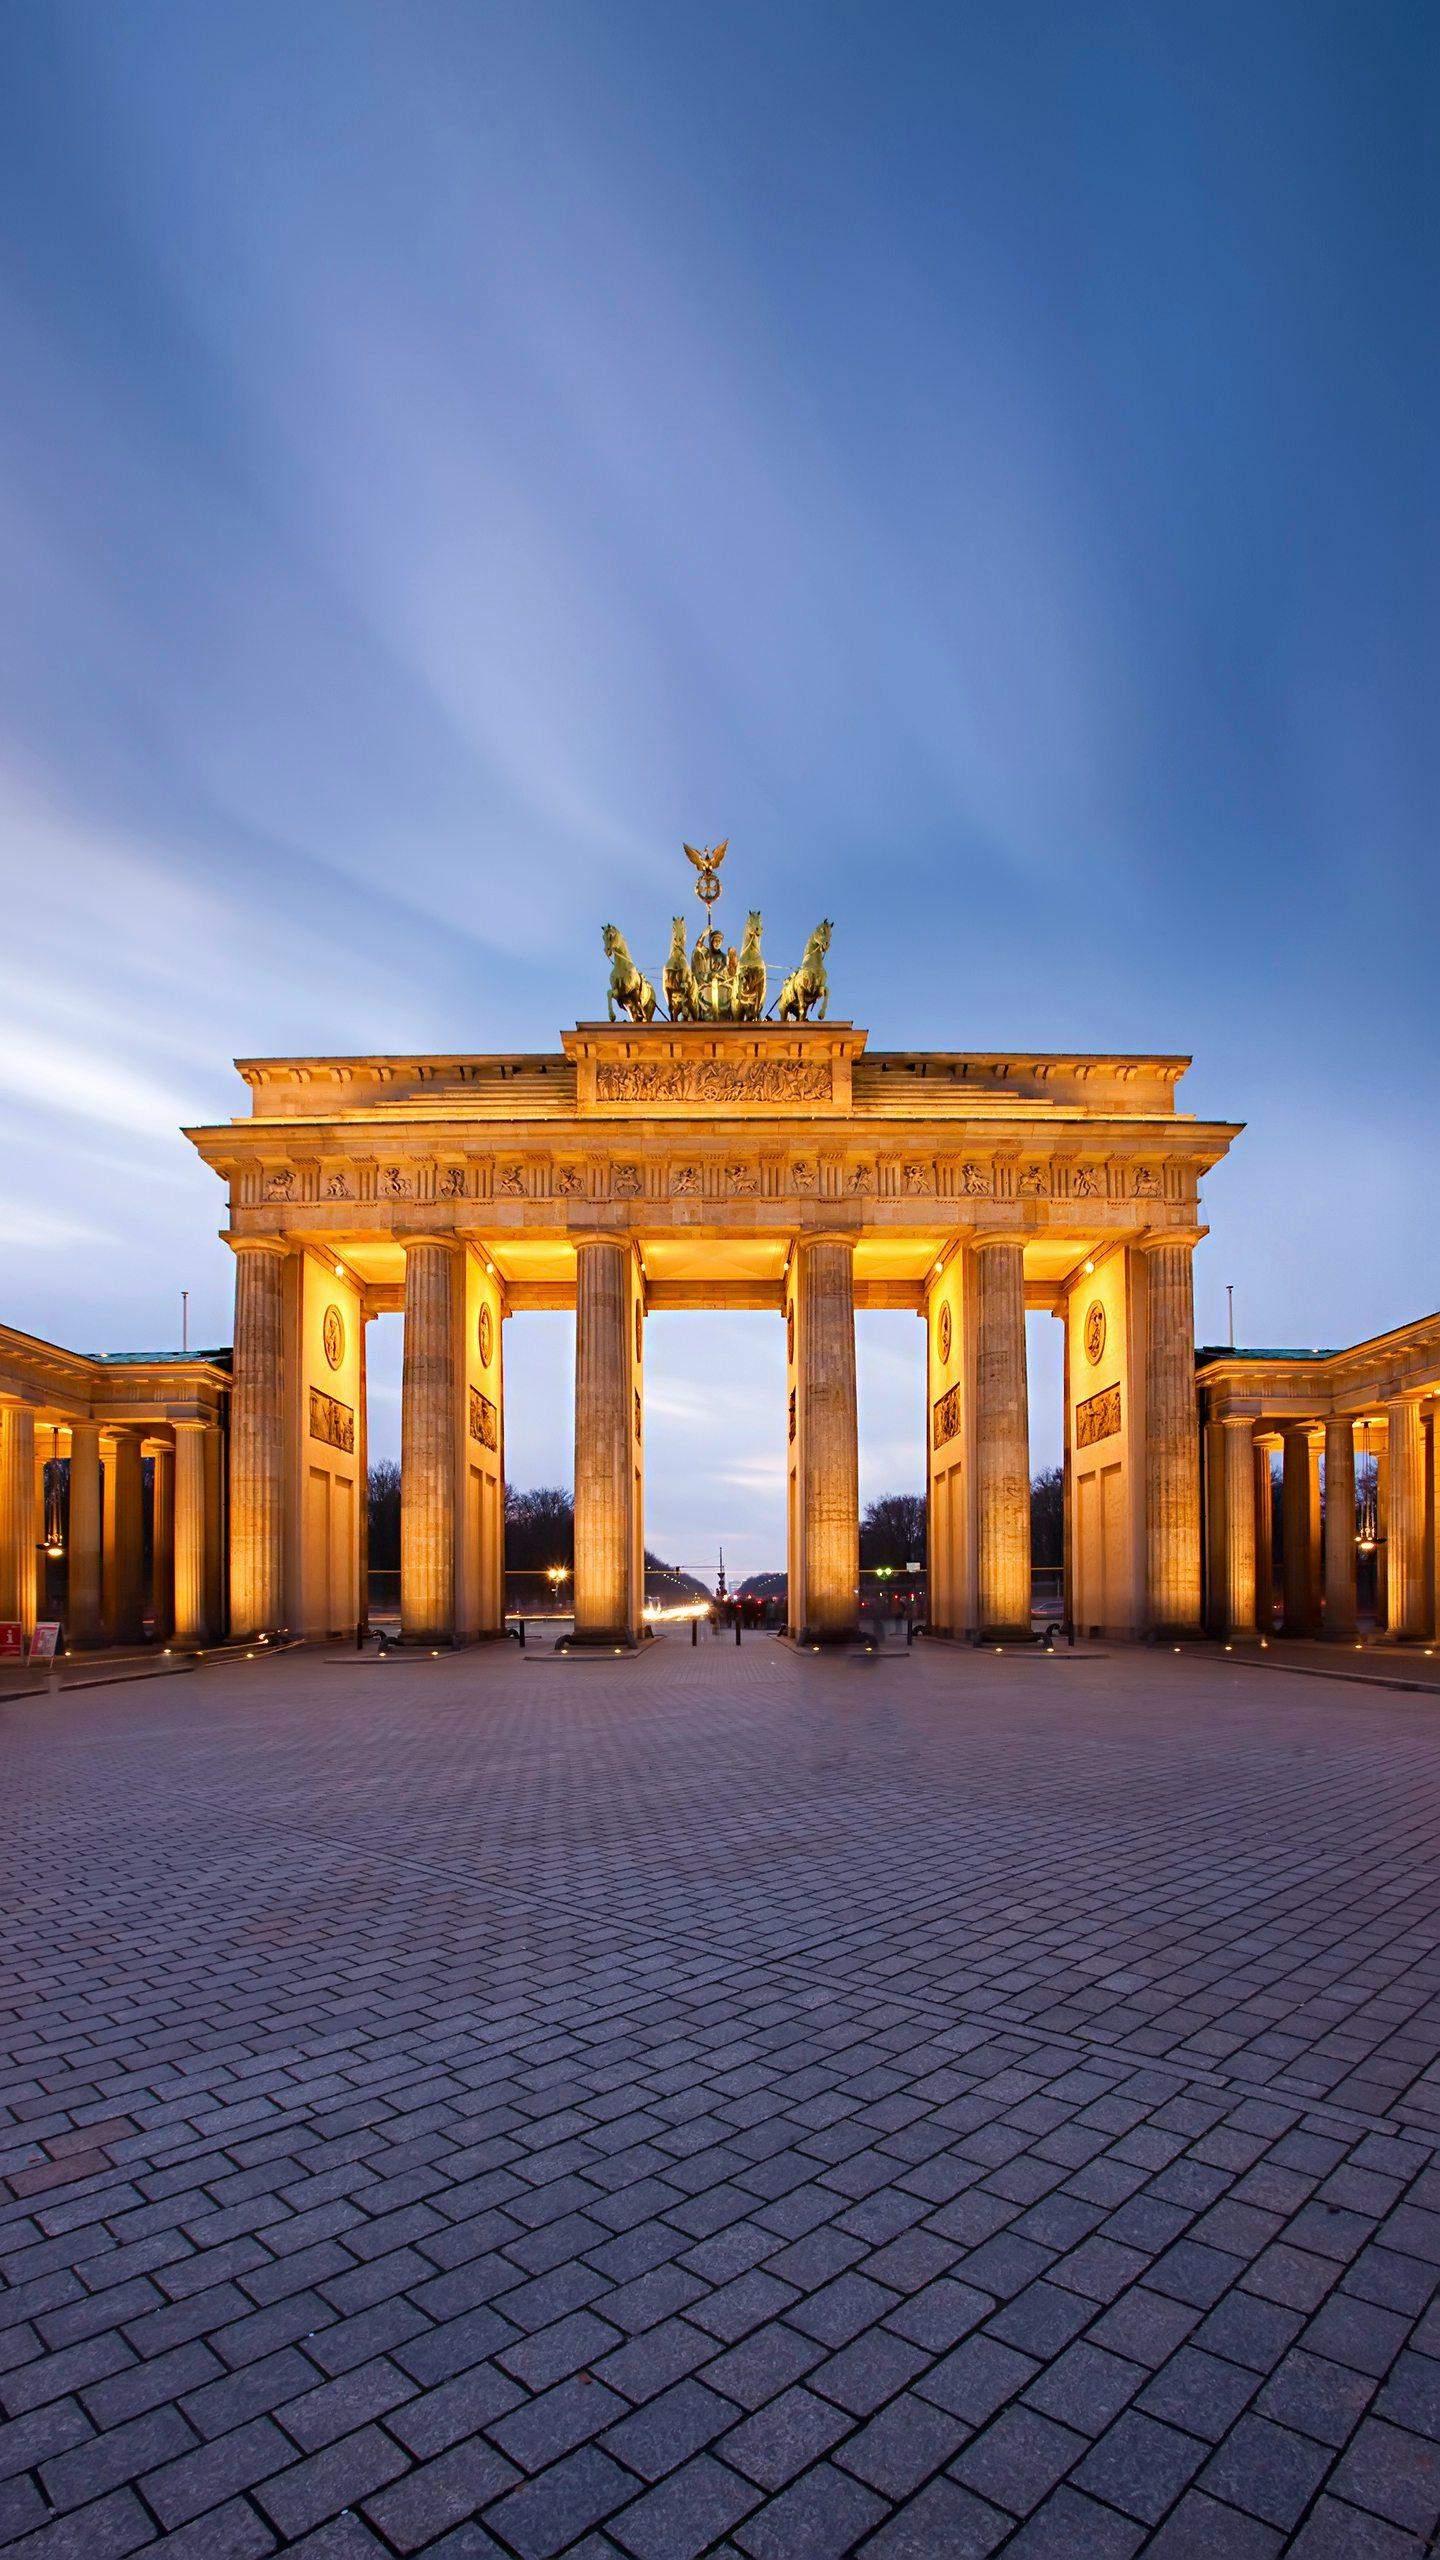 Berlin - Brandenburg, a neoclassical sandstone building, modeled after the colonnade architecture of the Greek Acropolis.